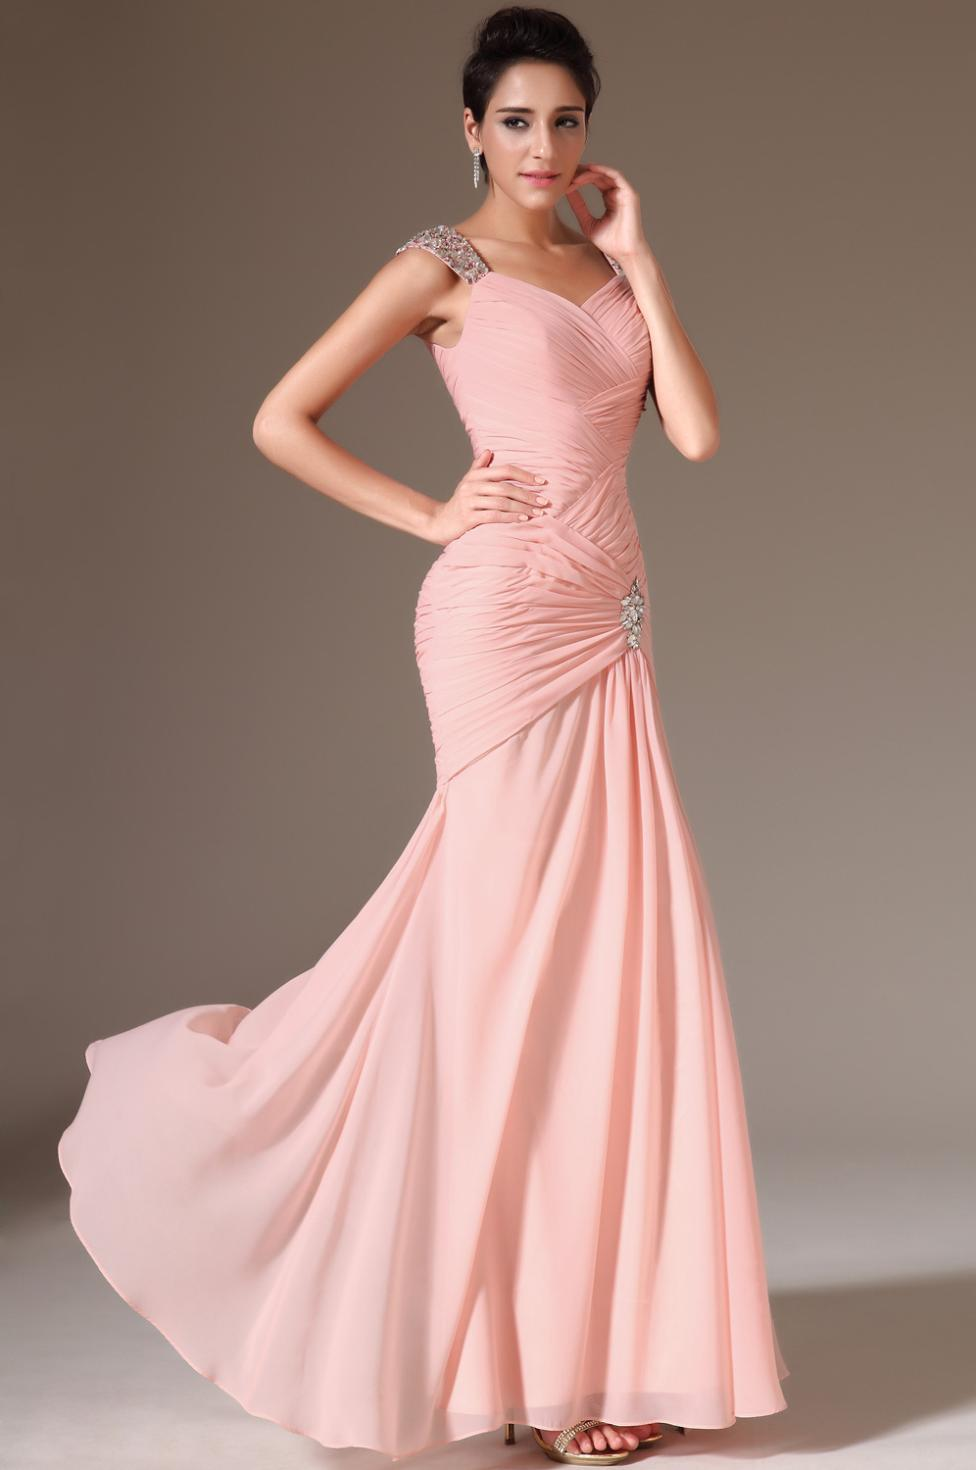 Nitree Elegant Light Pink Mermaid Prom Dress Long Chiffon Beading ...